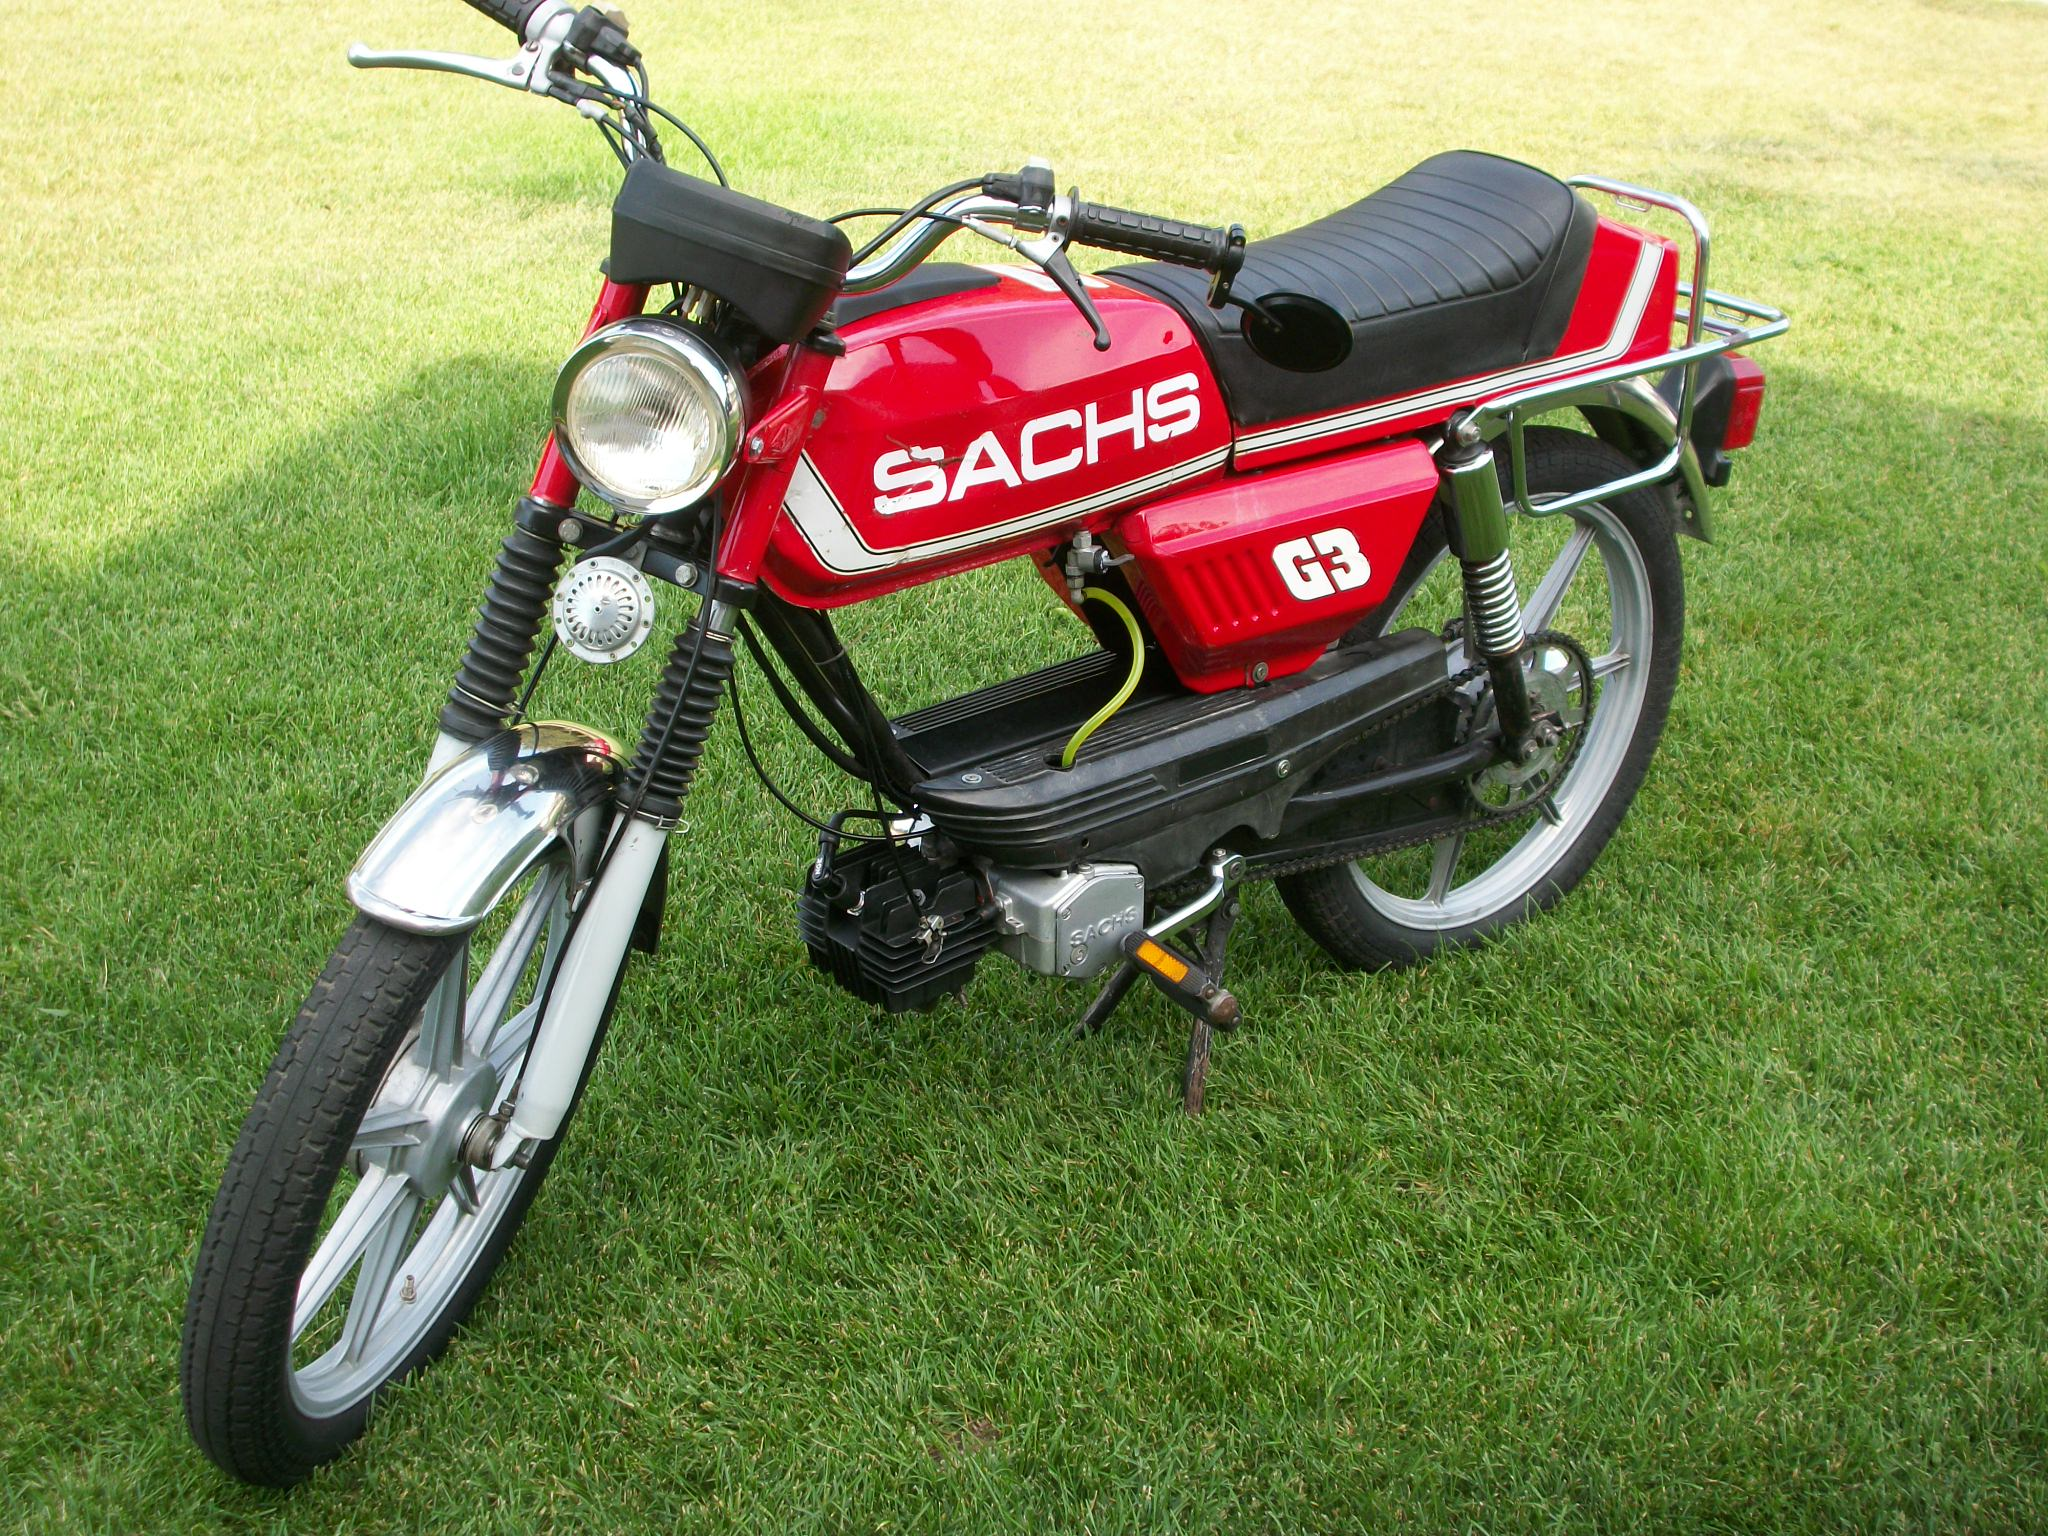 puch moped wiring diagram reconditioned 1979 sachs g3 prima sold sunday e go moped wiring diagram #13